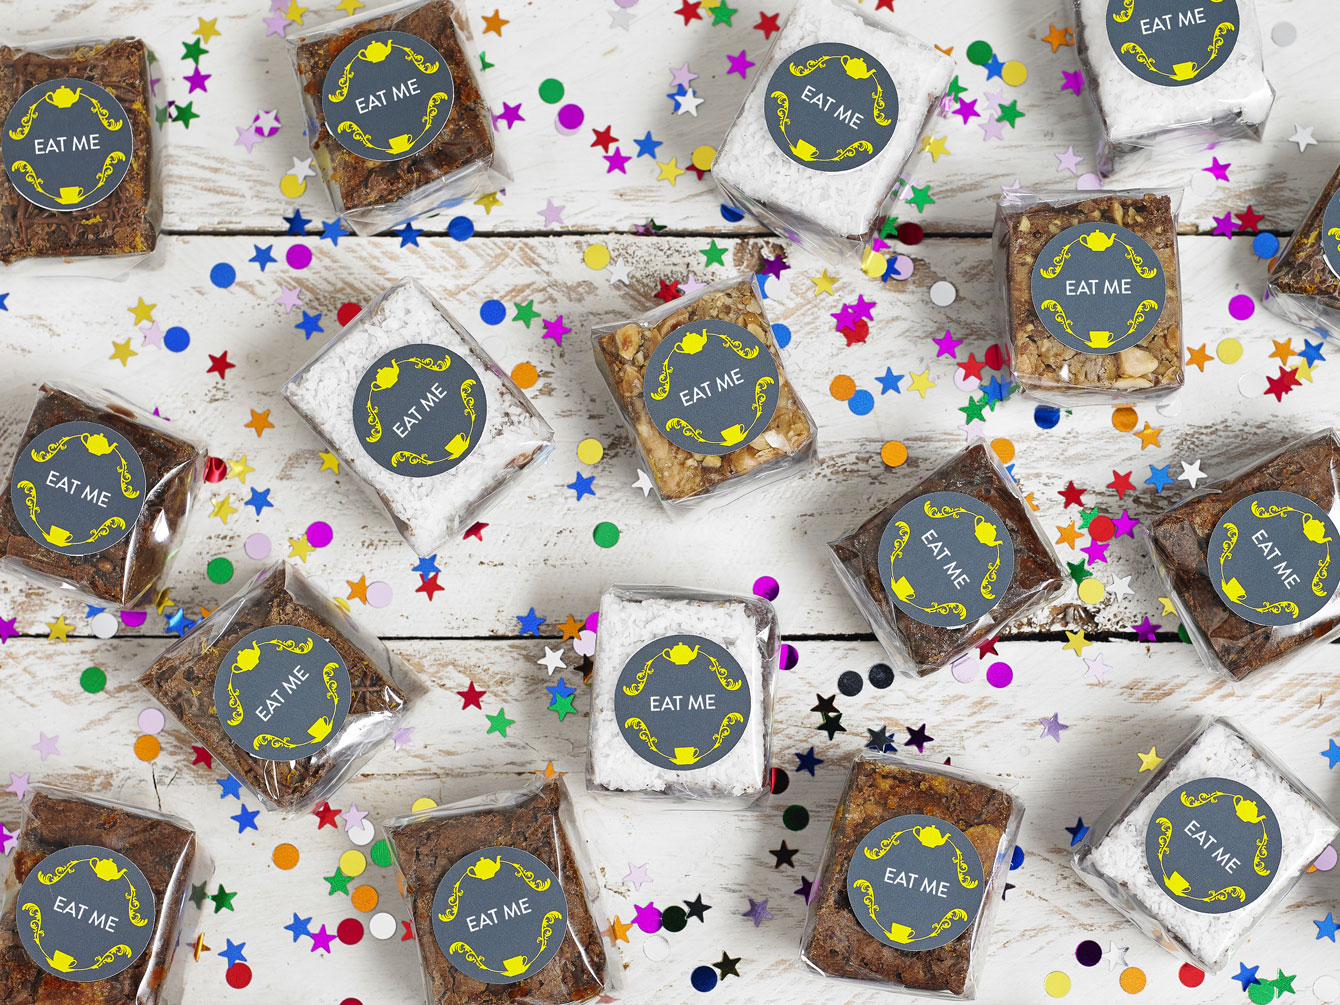 Eat me brownie bites - desktop